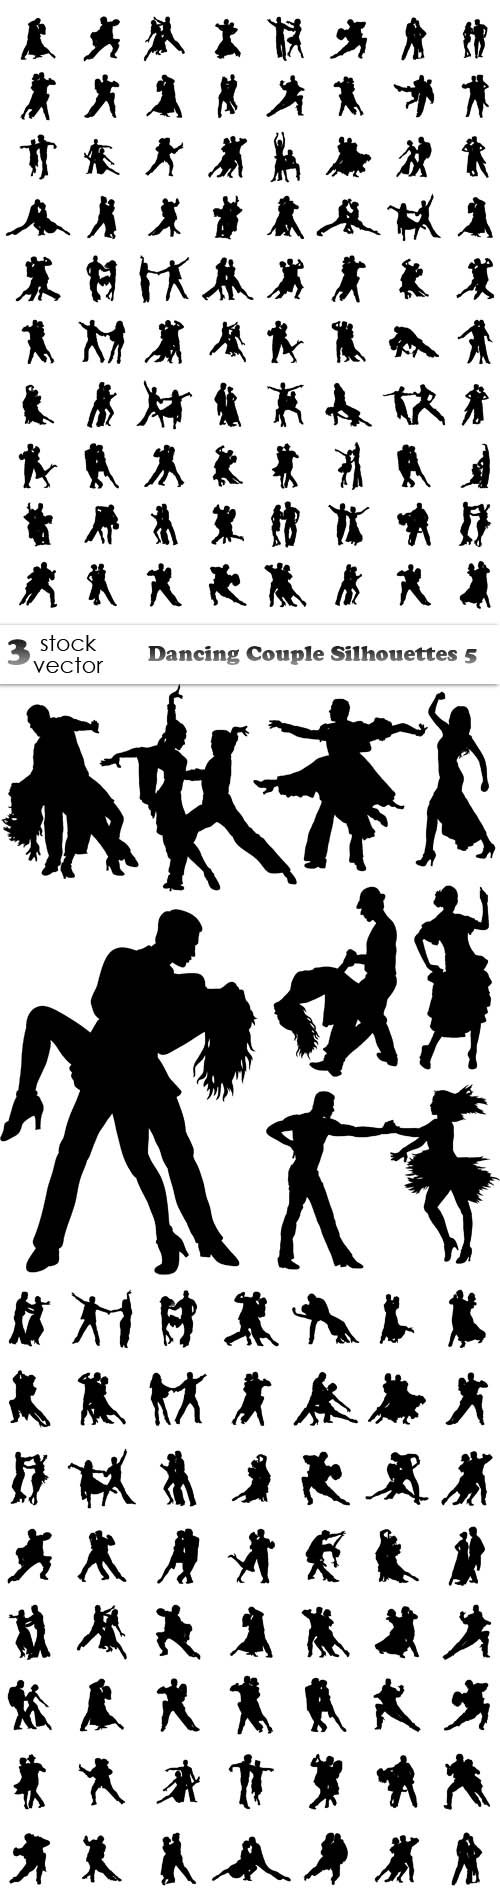 Vectors - Dancing Couple Silhouettes 5